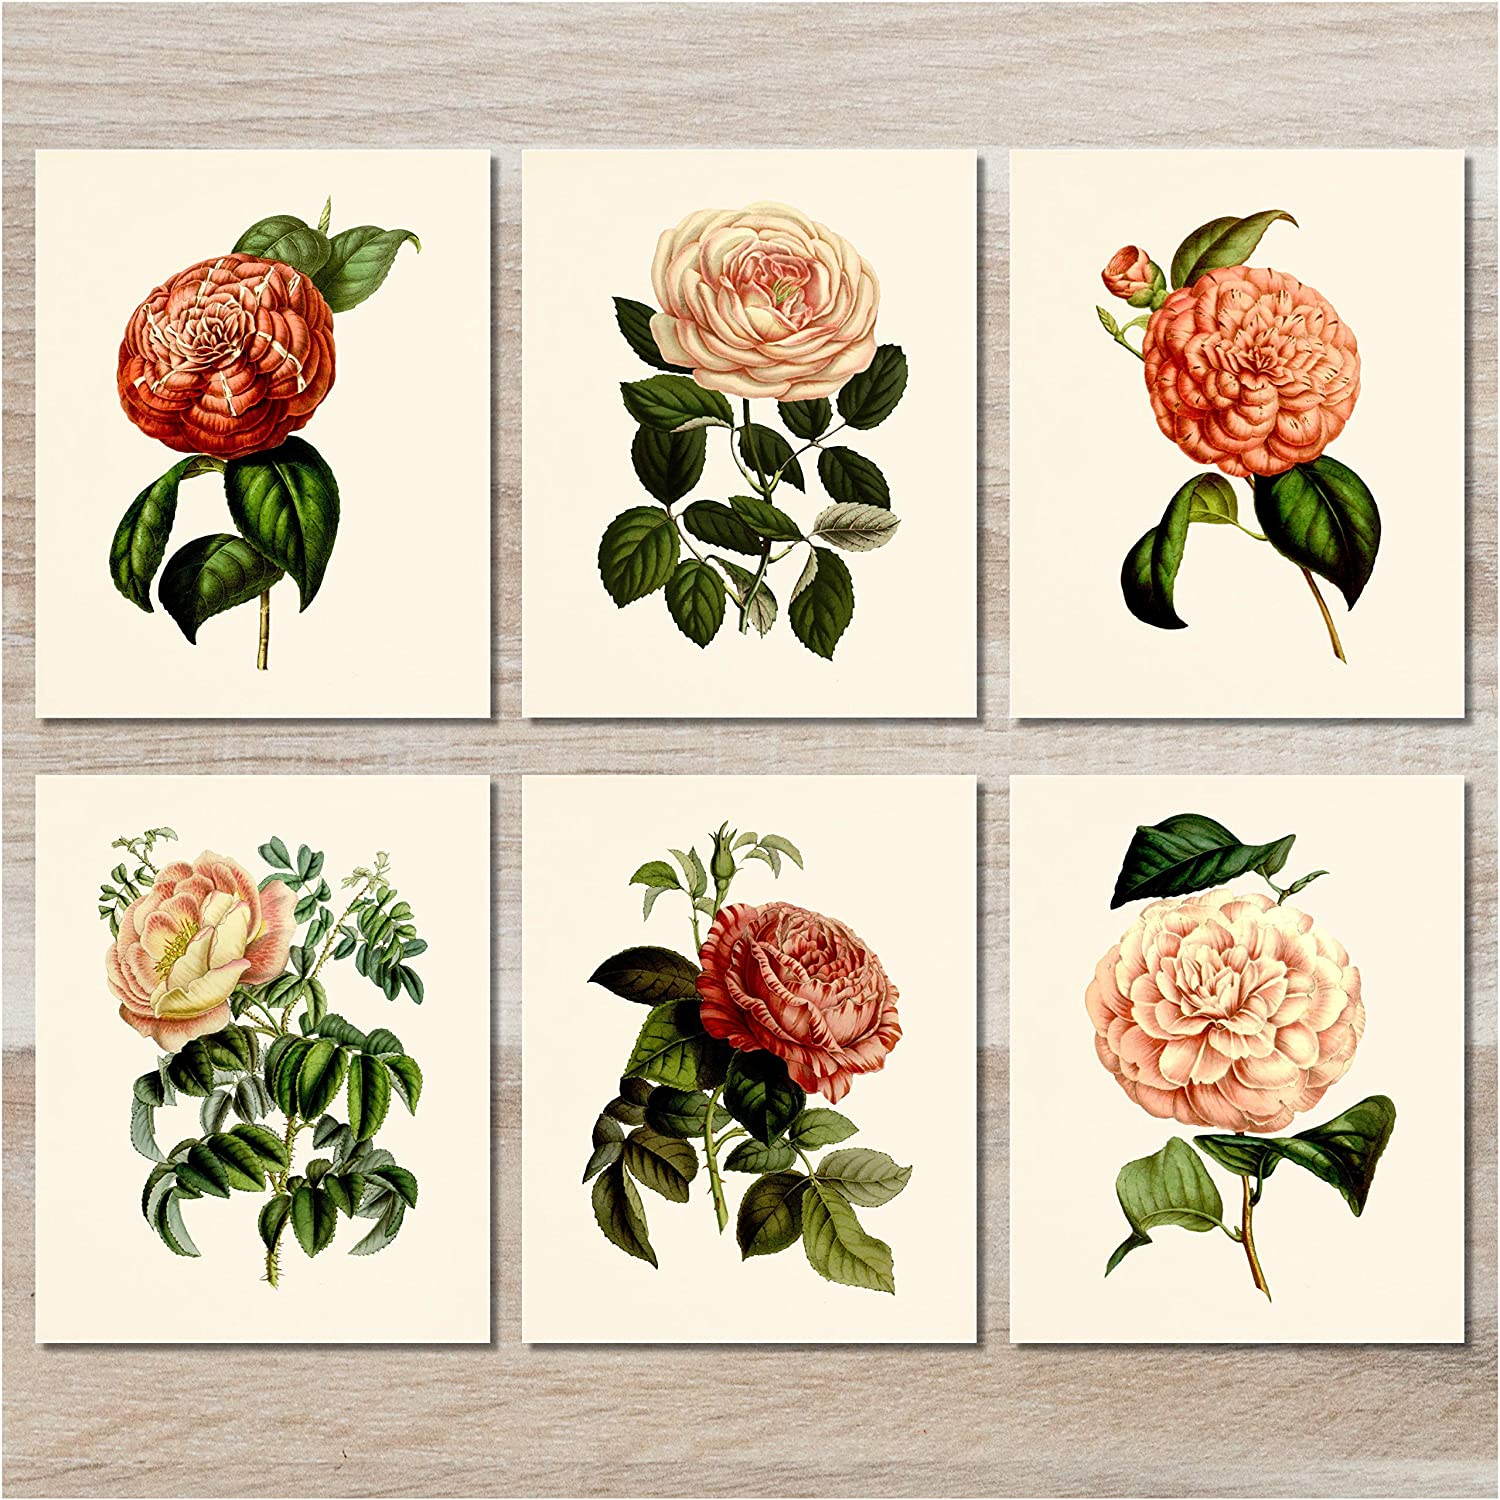 Flower wall art botanical prints set of 6 8x10 unframed vintage floral decor